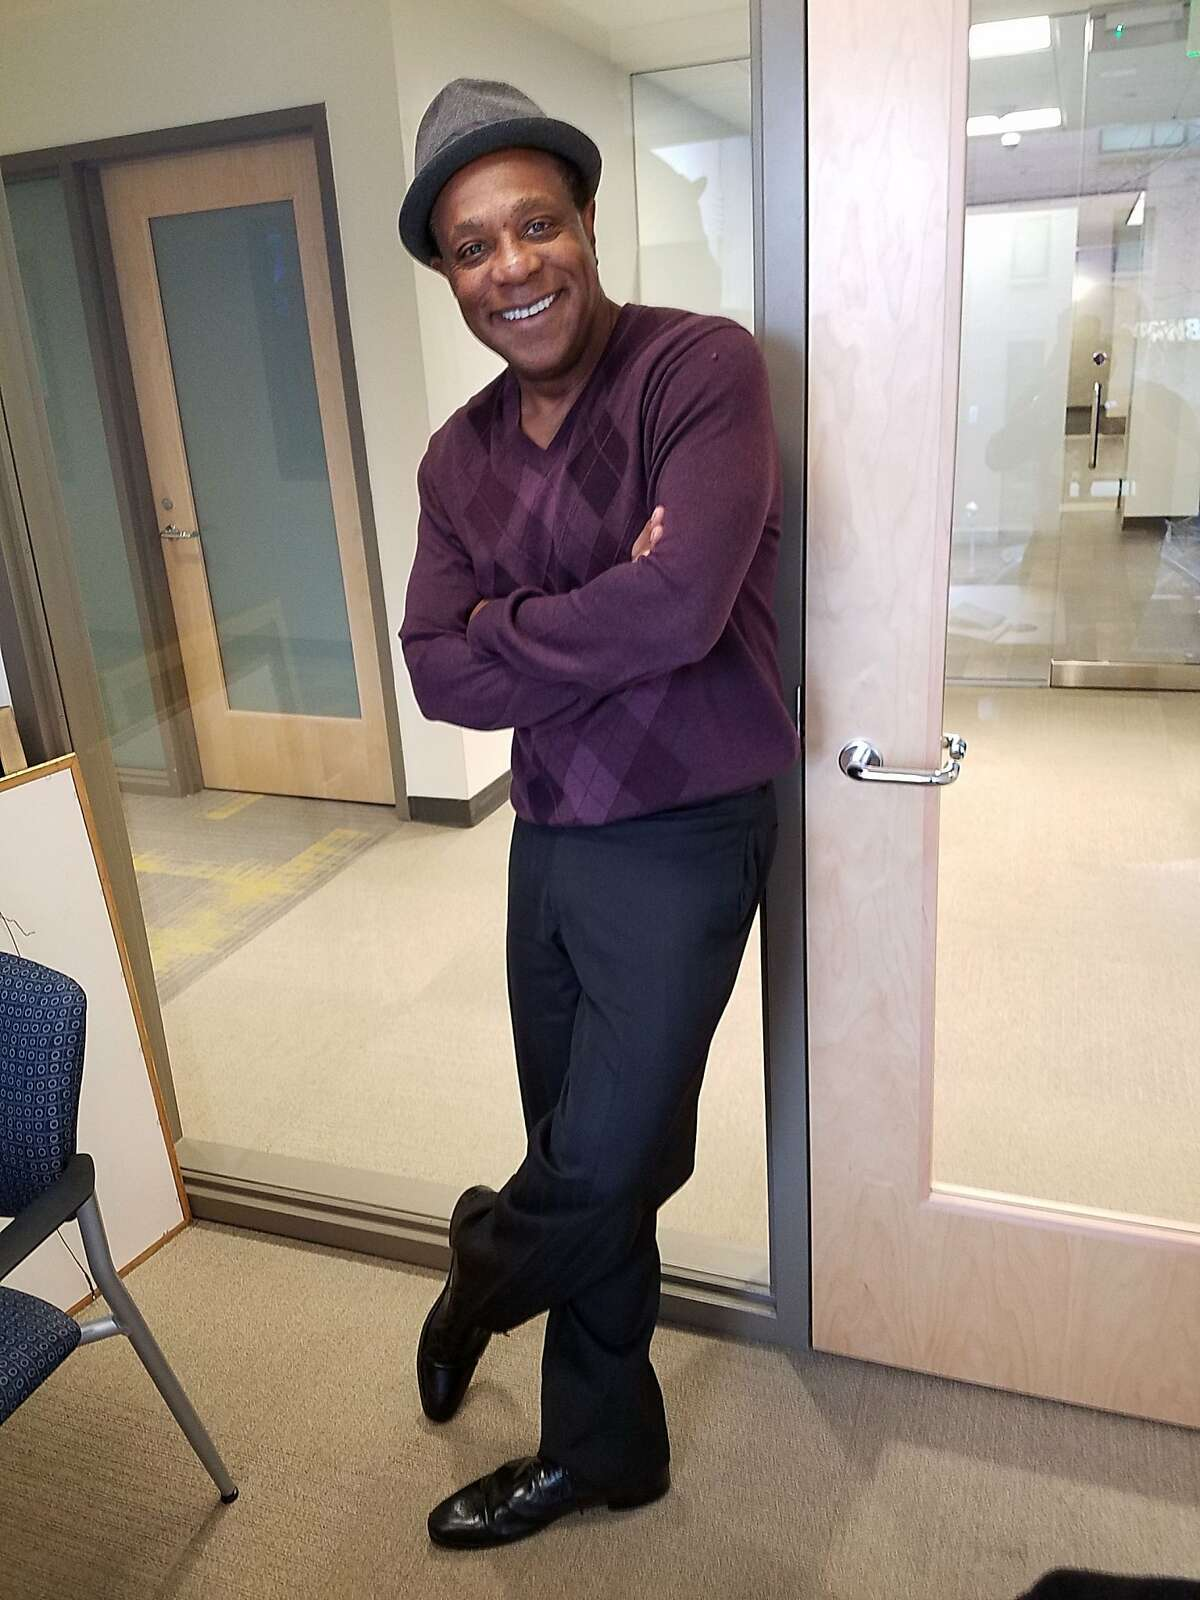 Talk-show host, comedian and performer of a one-man show, Brian Copeland